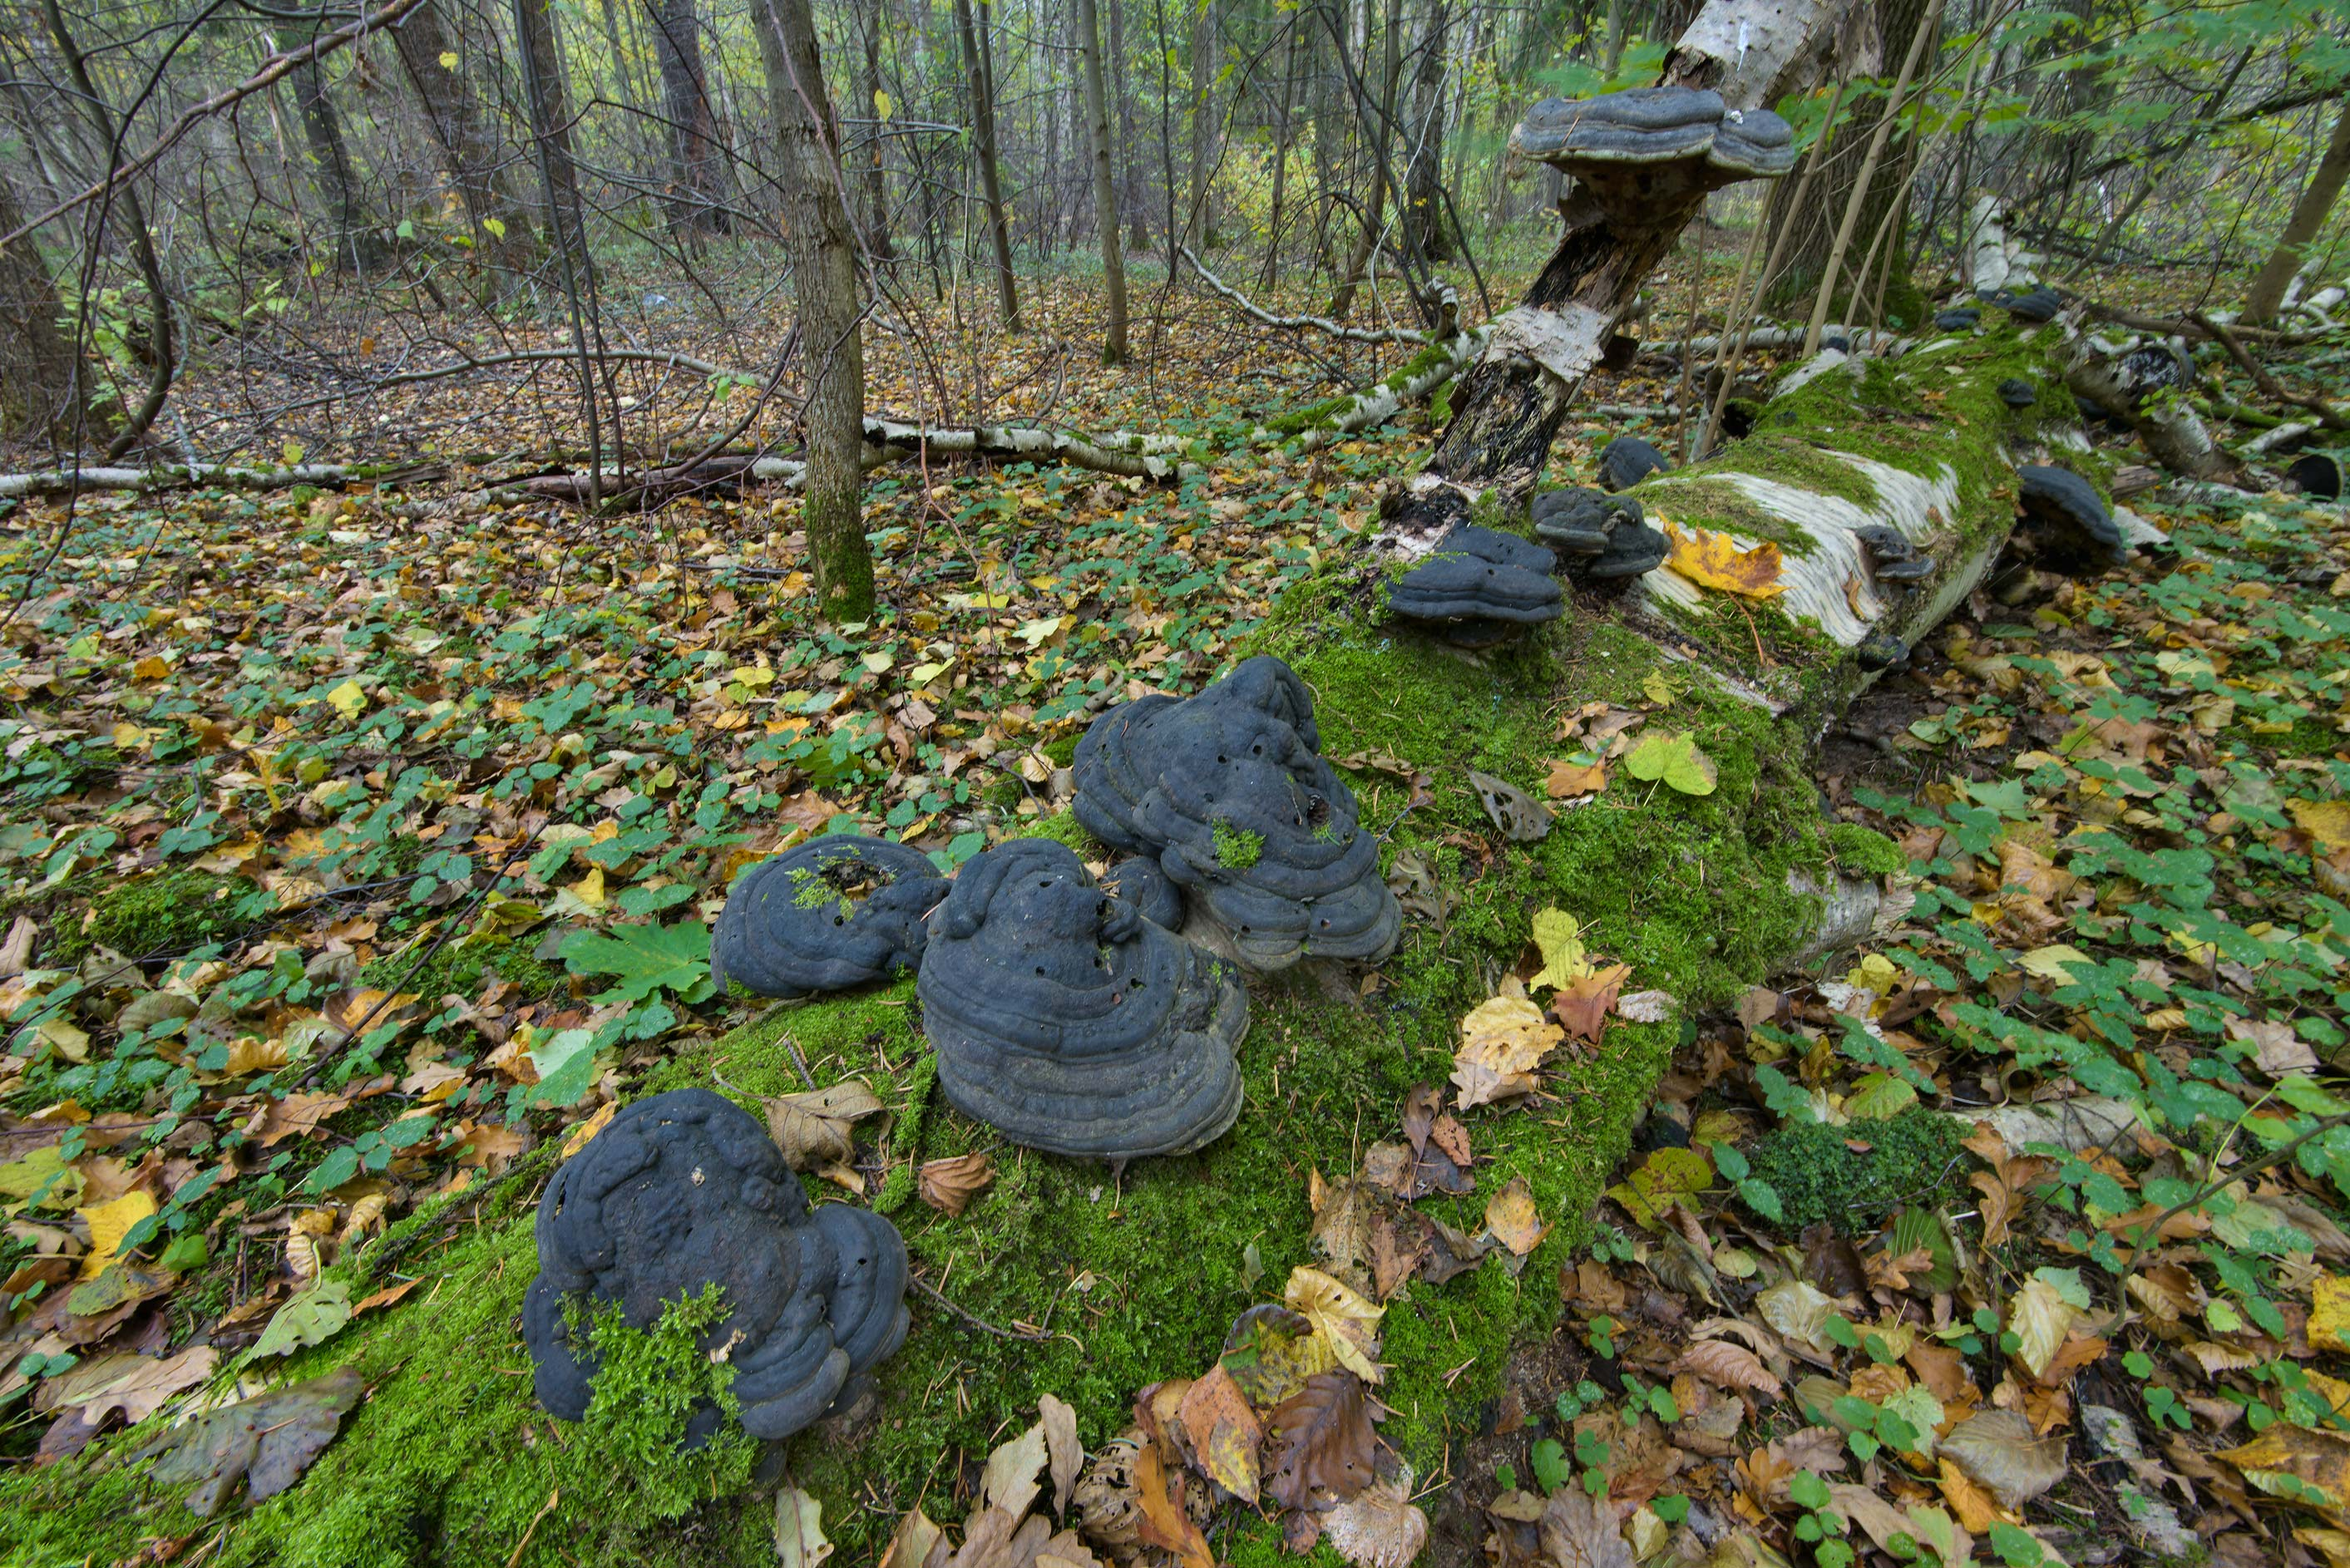 Rotten blackened tinder polypore mushrooms...Nos, west from St.Petersburg. Russia